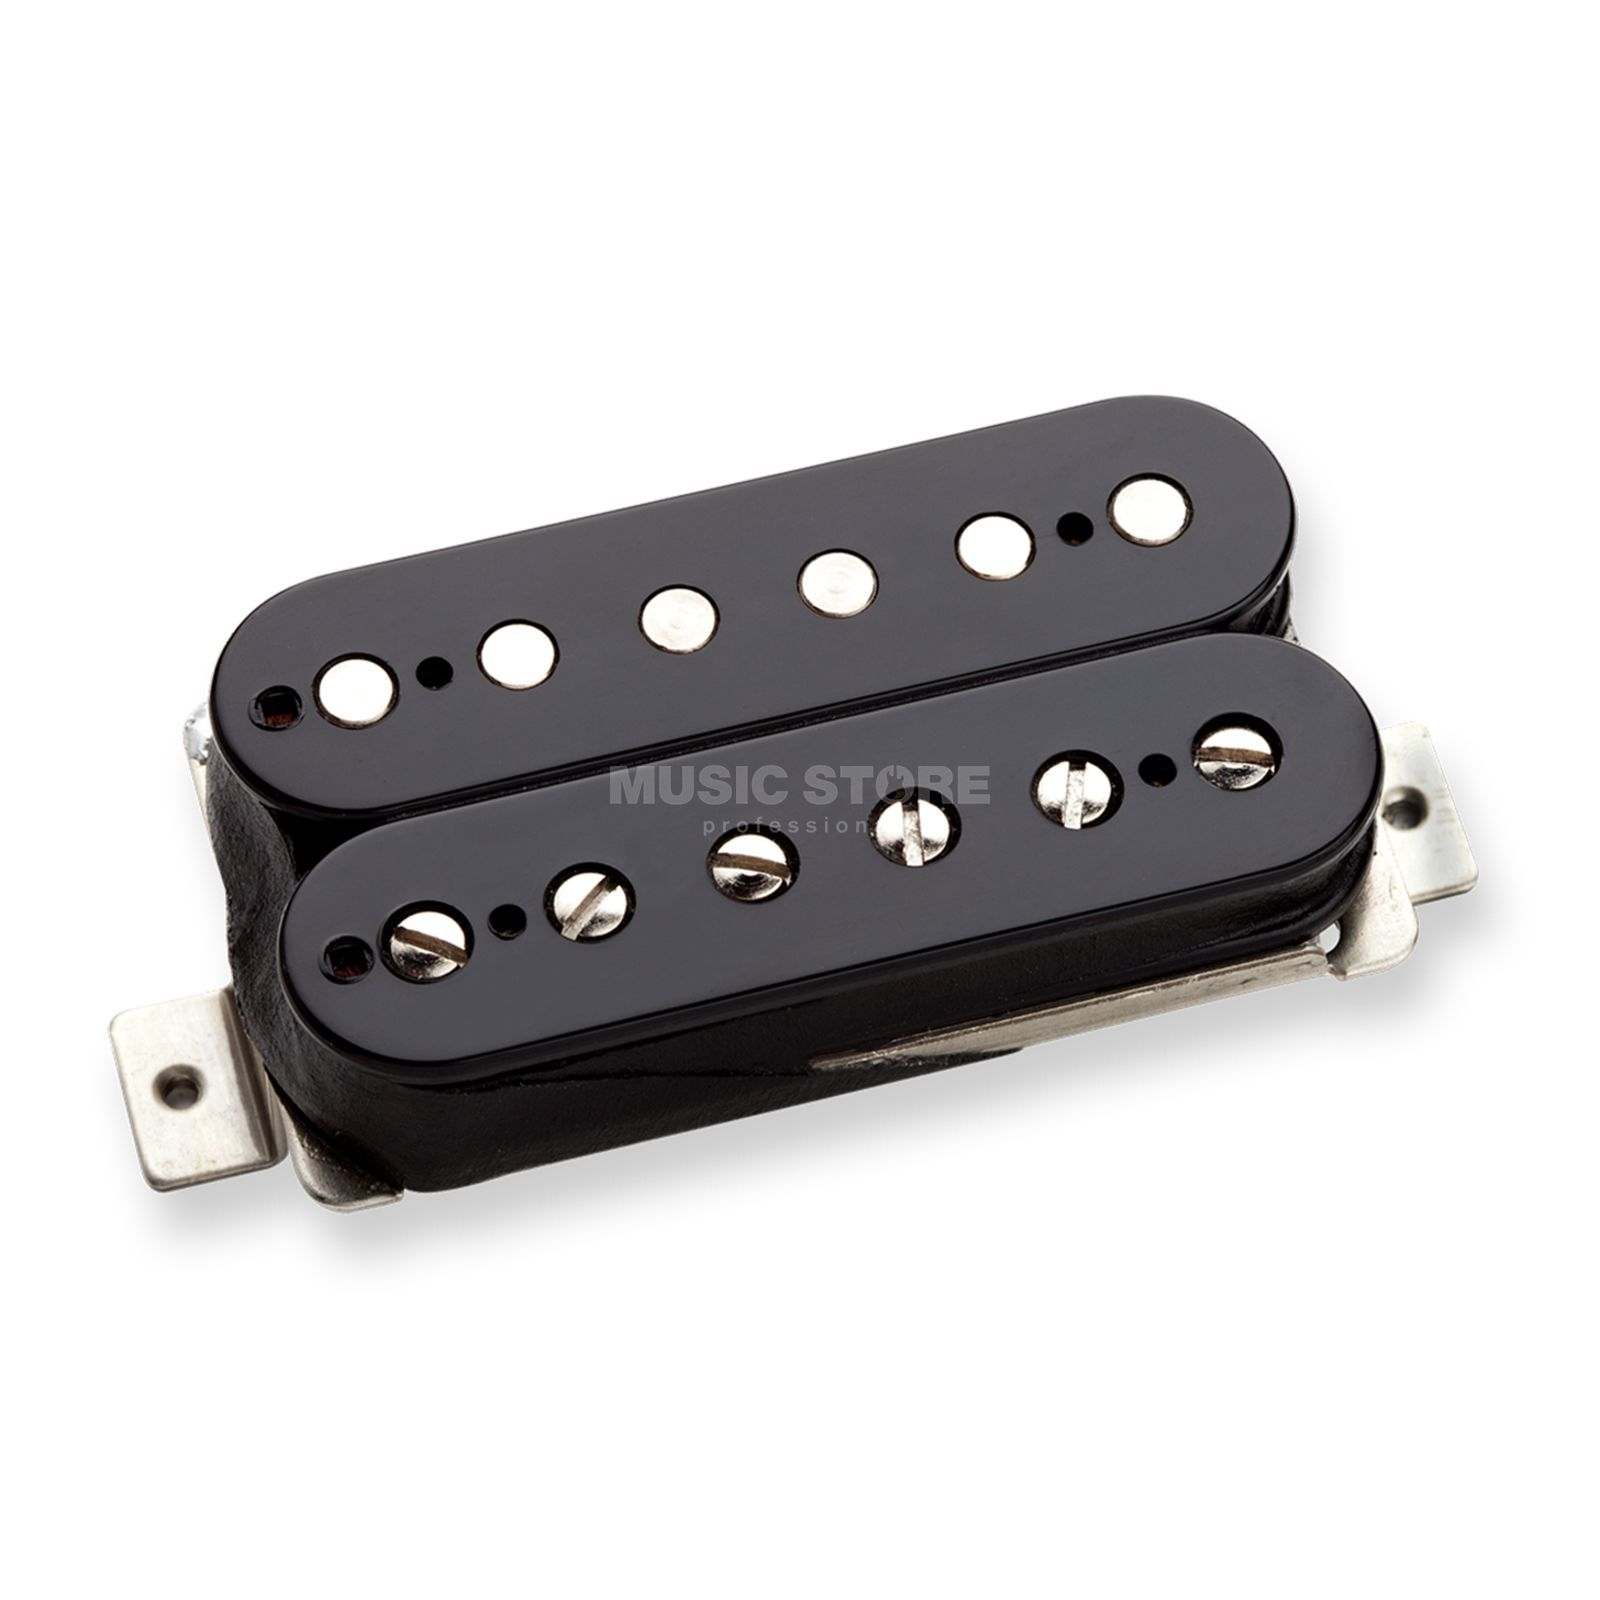 Seymour Duncan STB-59B 59 Modell Bridge Black Trembucker 4-phase Produktbillede